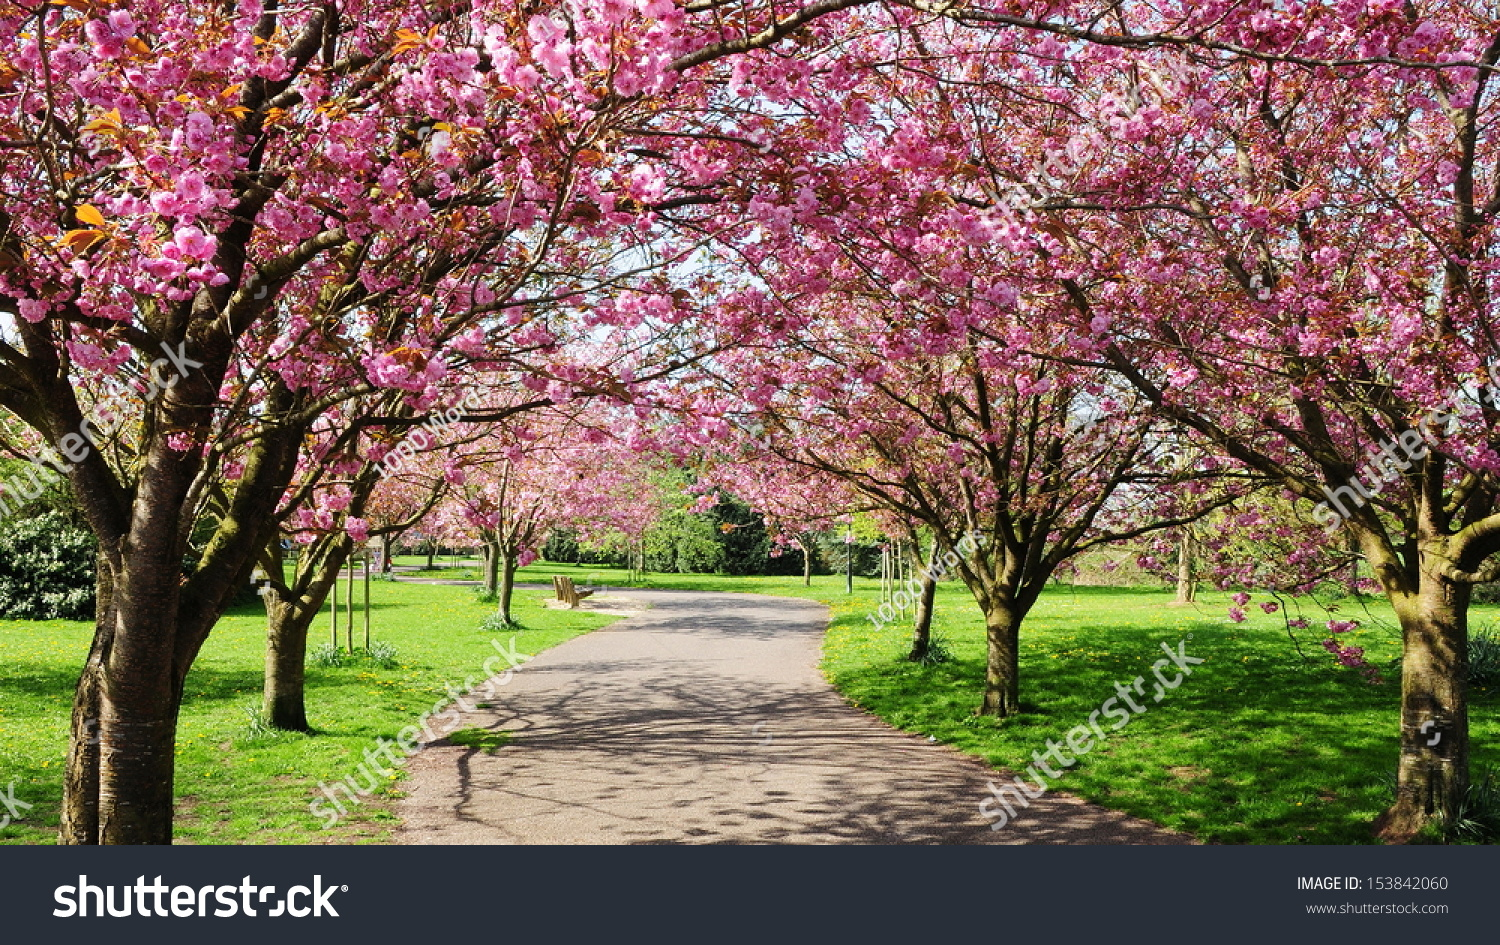 how to say cherry blossom in japanese